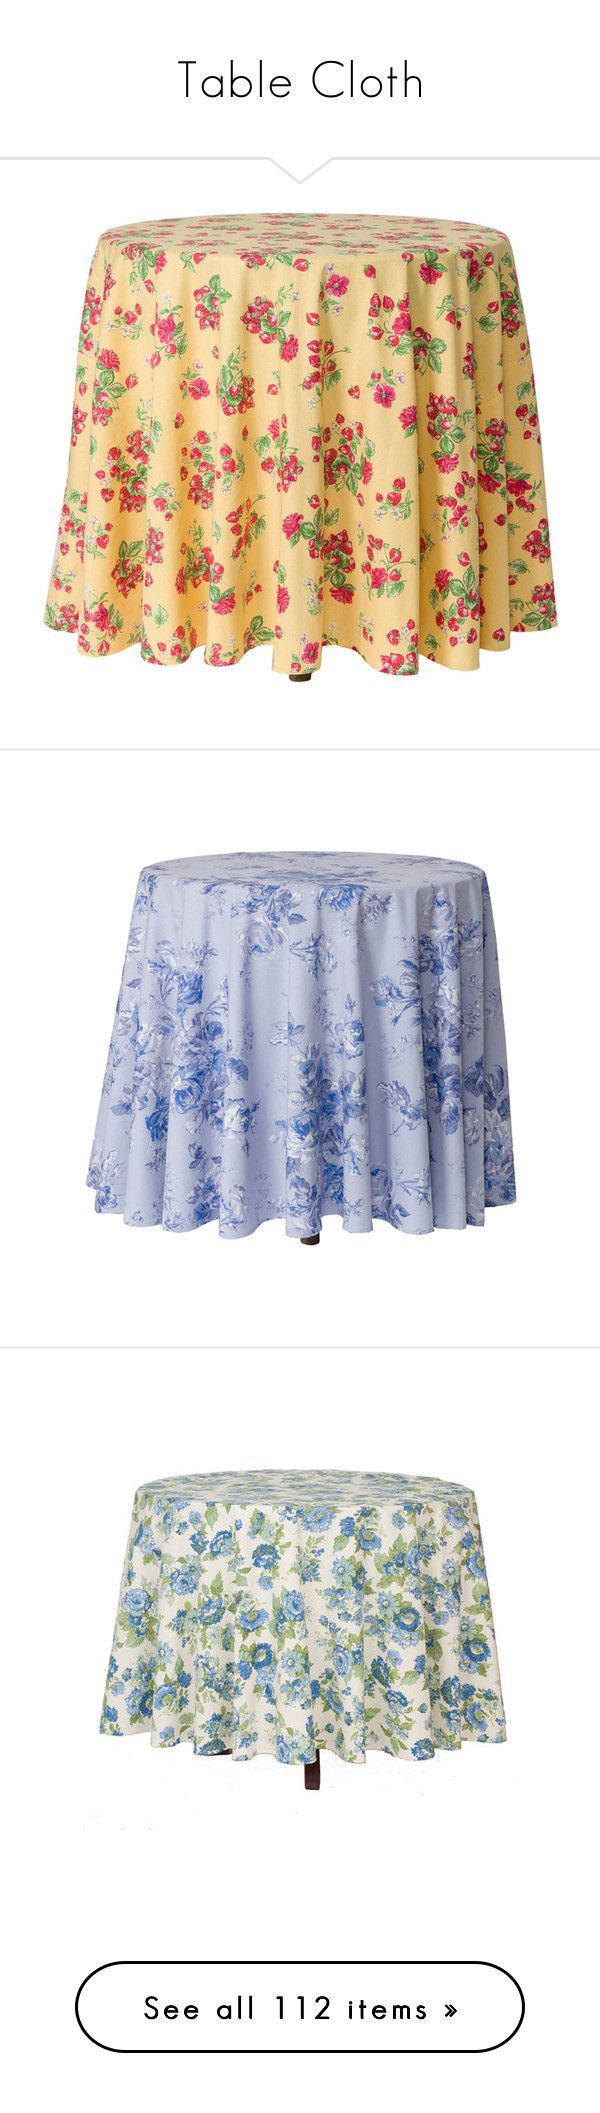 Round Kitchen Table Cloth Blue Tablecloth On Pinterest 100 Inspiring Ideas To Discover And